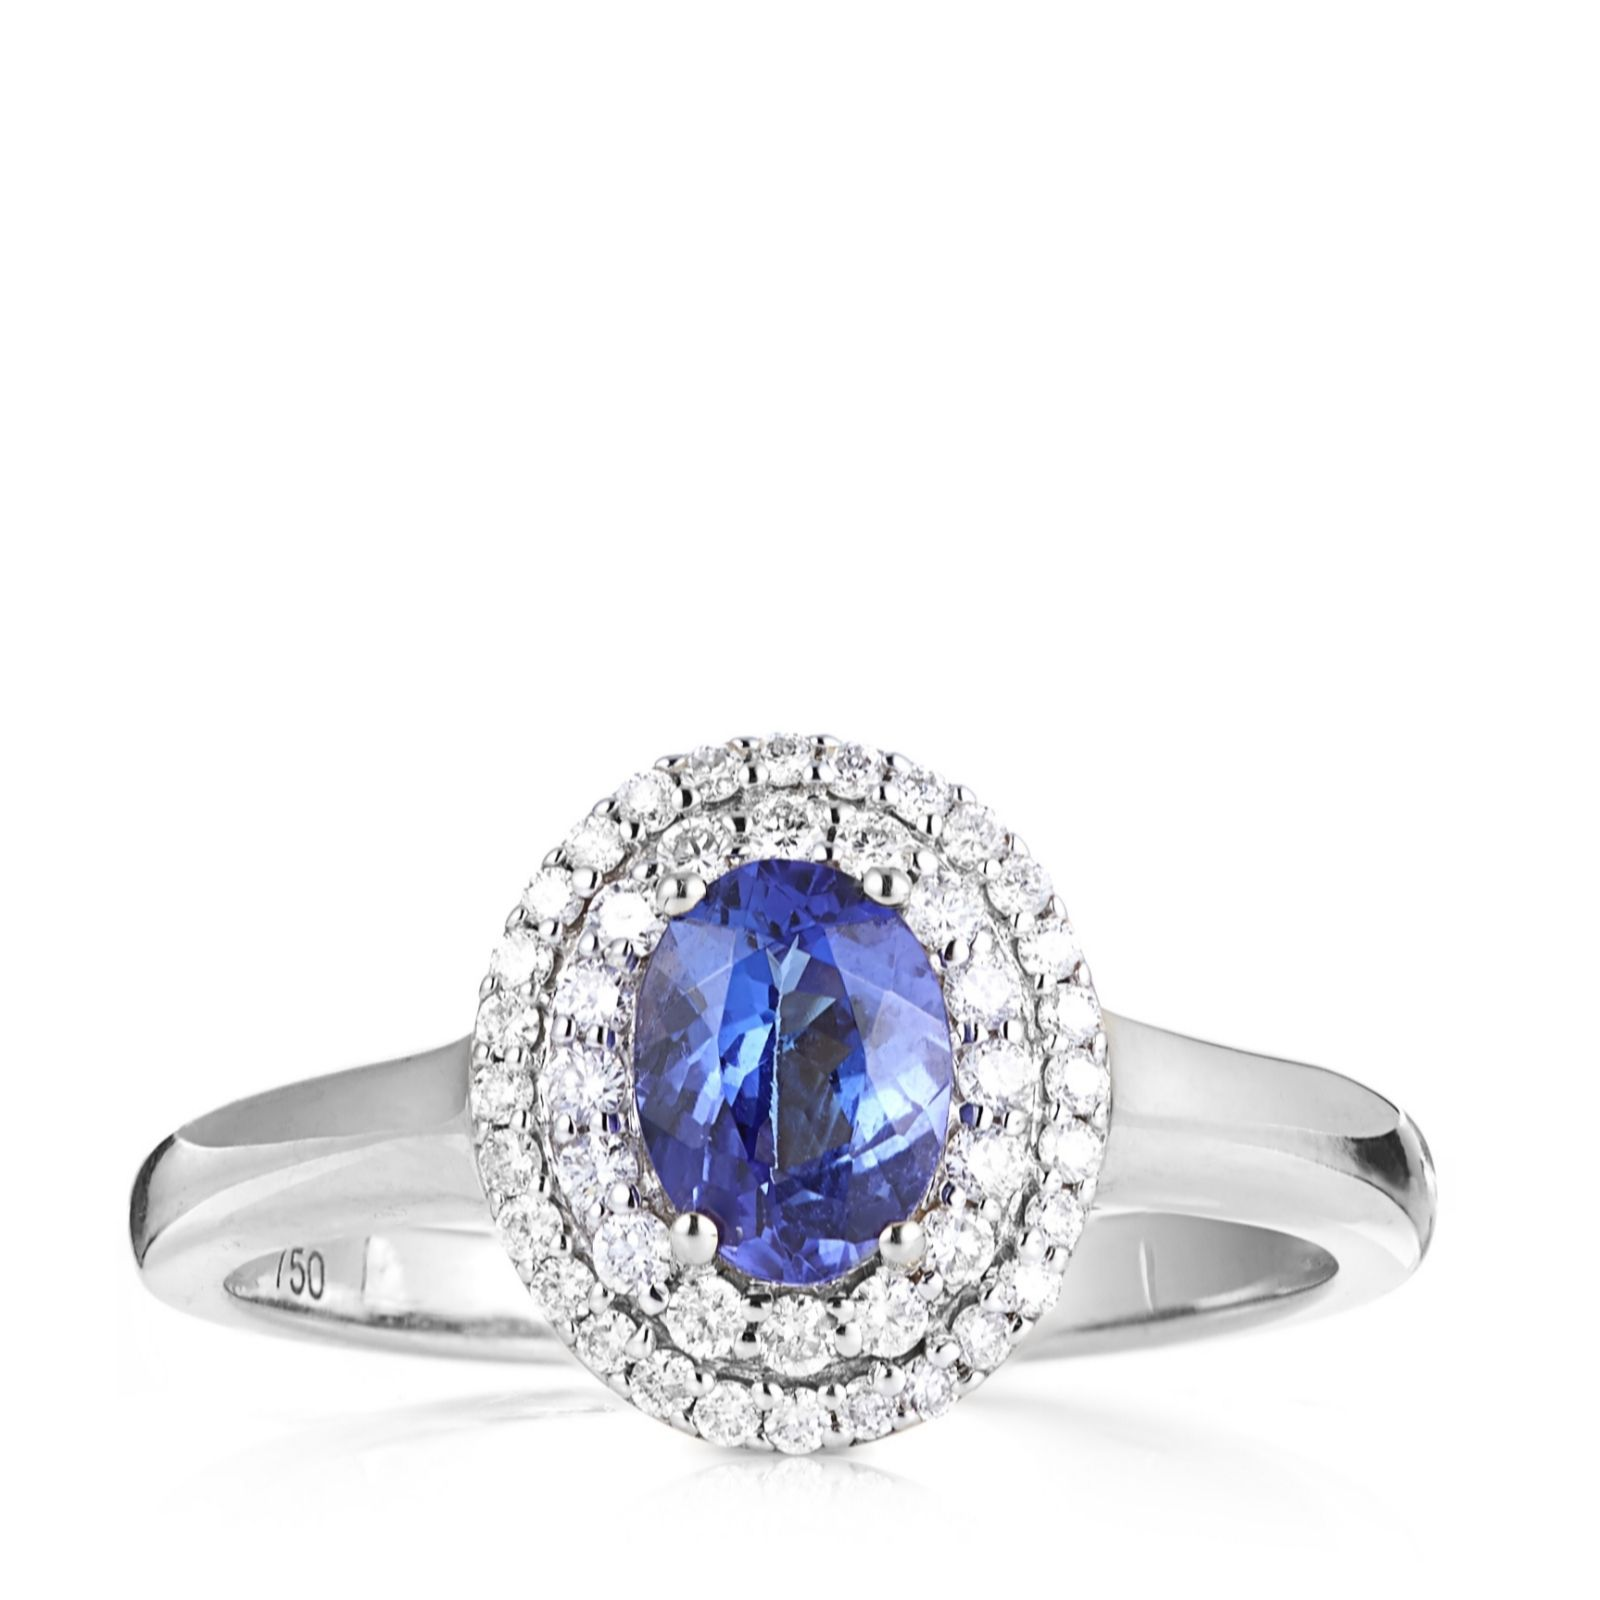 details product rings tanzanite ring diamond soleste co tiffany jewellery and engagement platinum